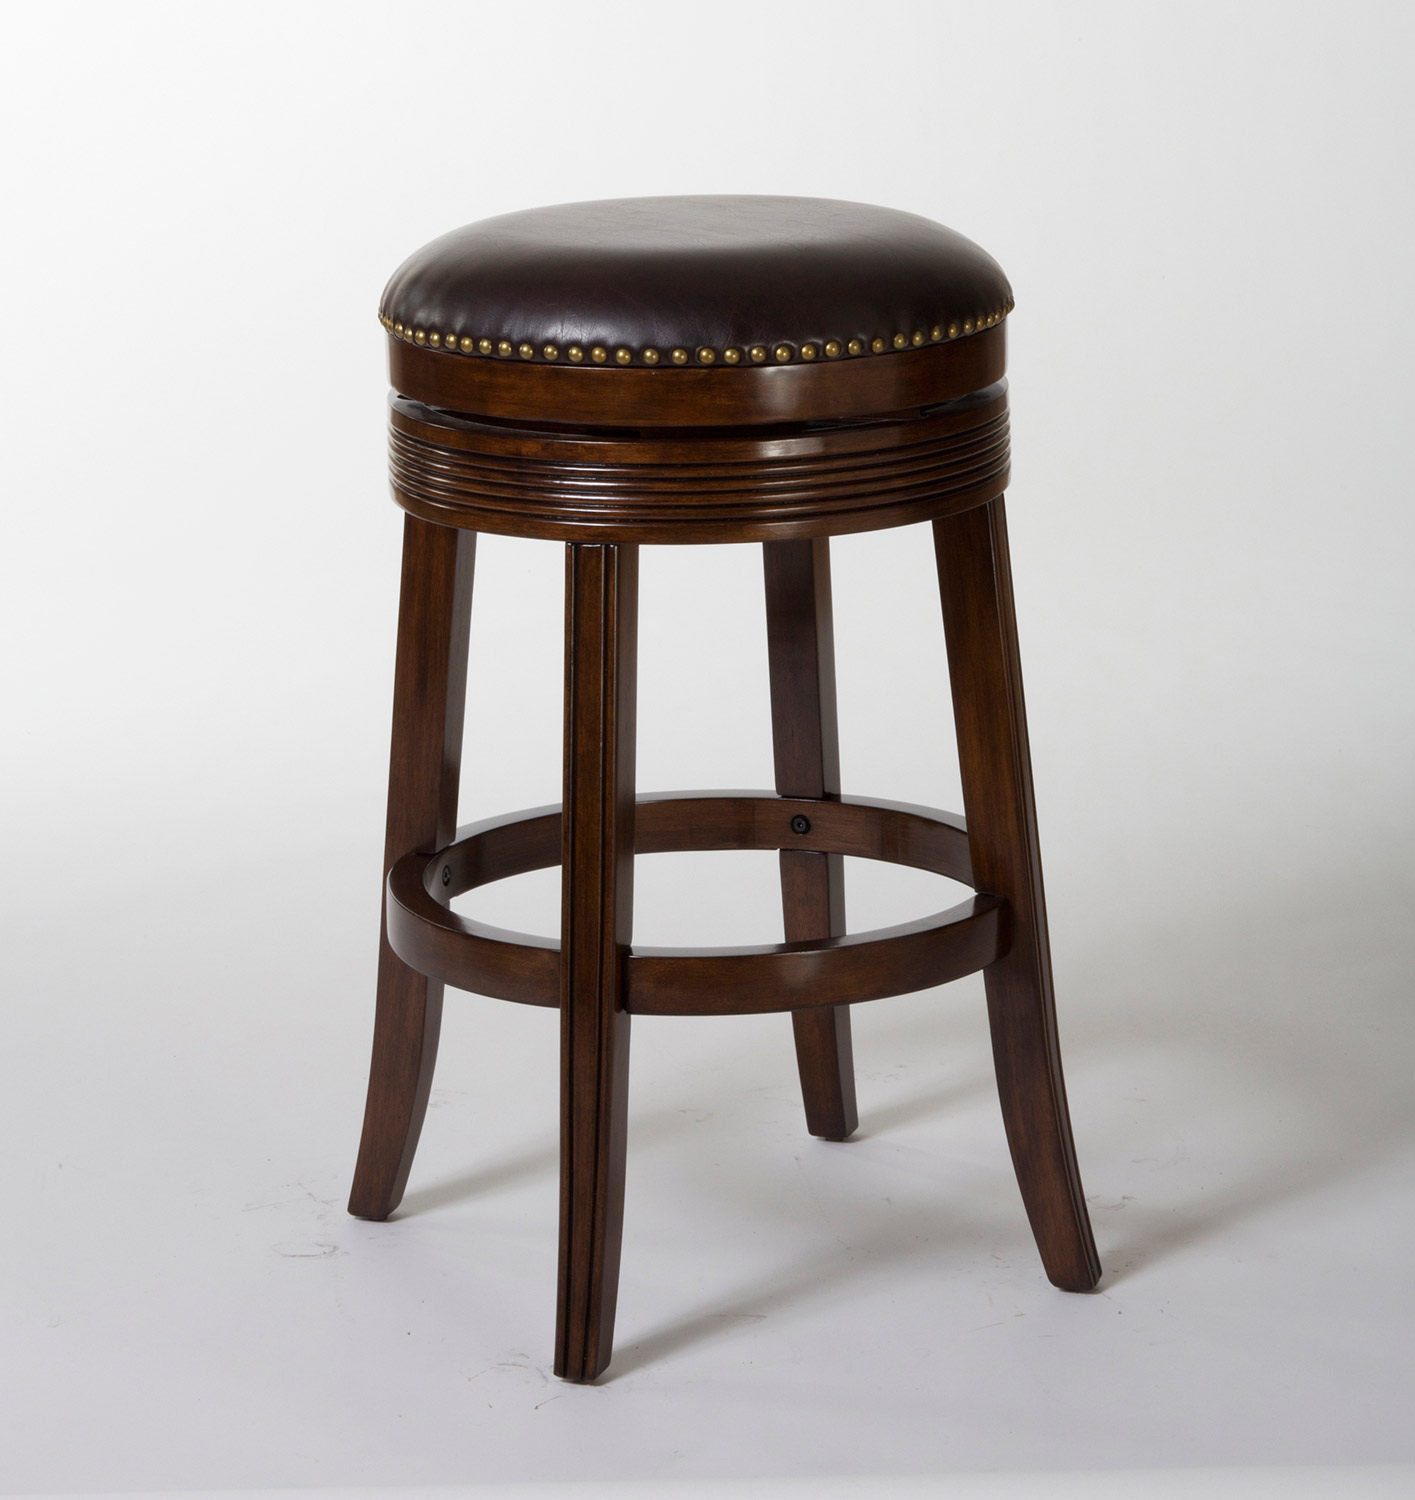 Hillsdale Tillman Backless Swivel Counter Stool - Espresso/Dark Brown PU